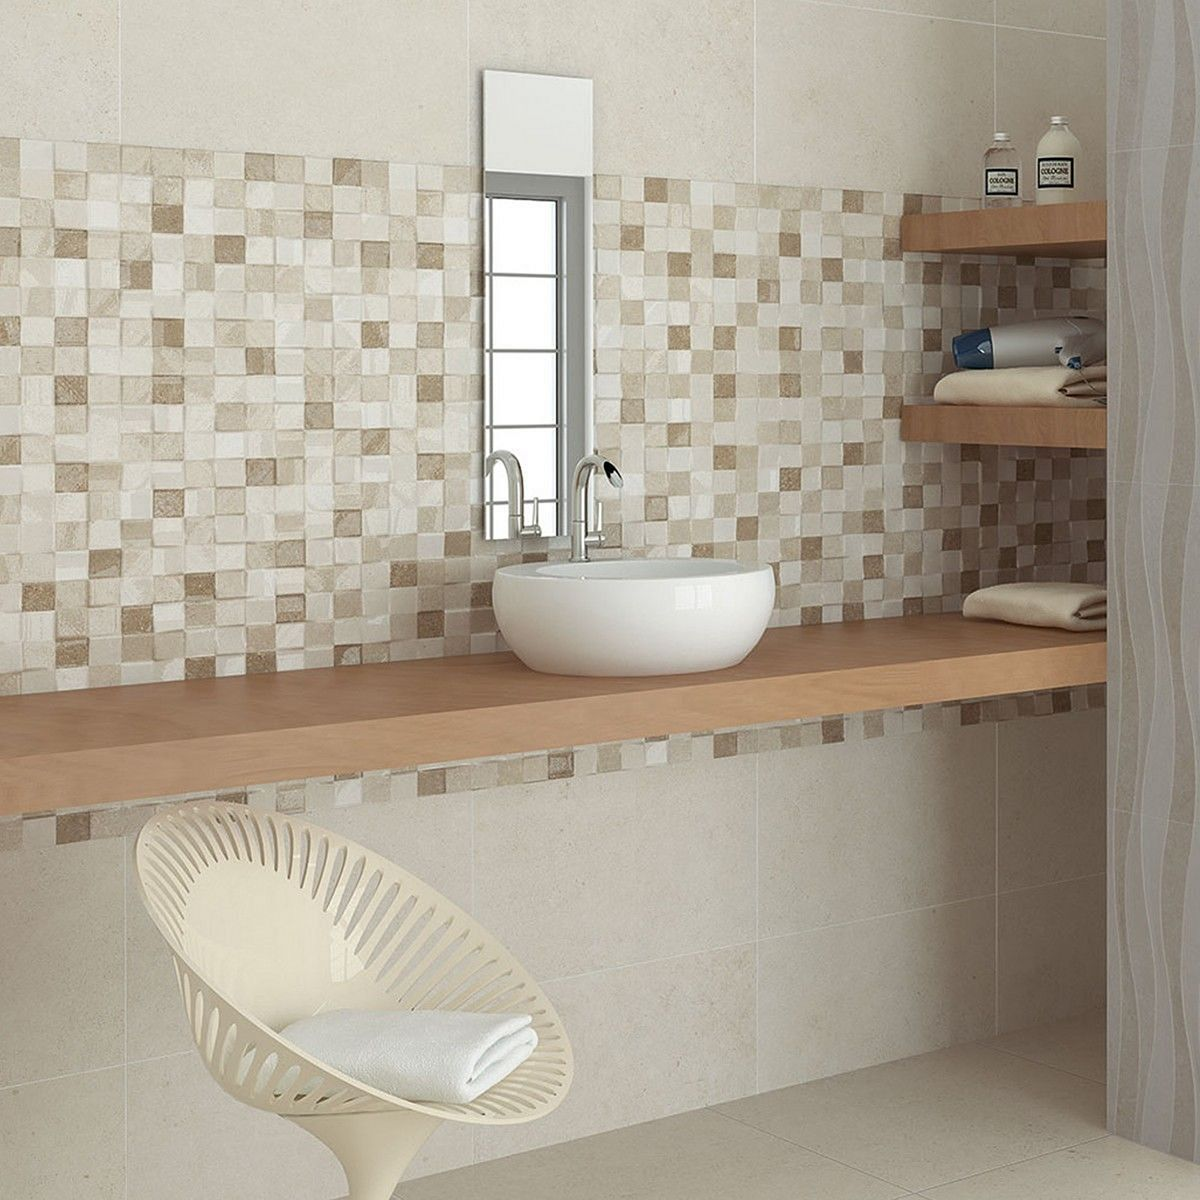 Awesome Bathroom Mosaic Tile Design Ideas For Your Inspiration 45 Best Pictures Room Wall Tiles Mosaic Bathroom Amazing Bathrooms